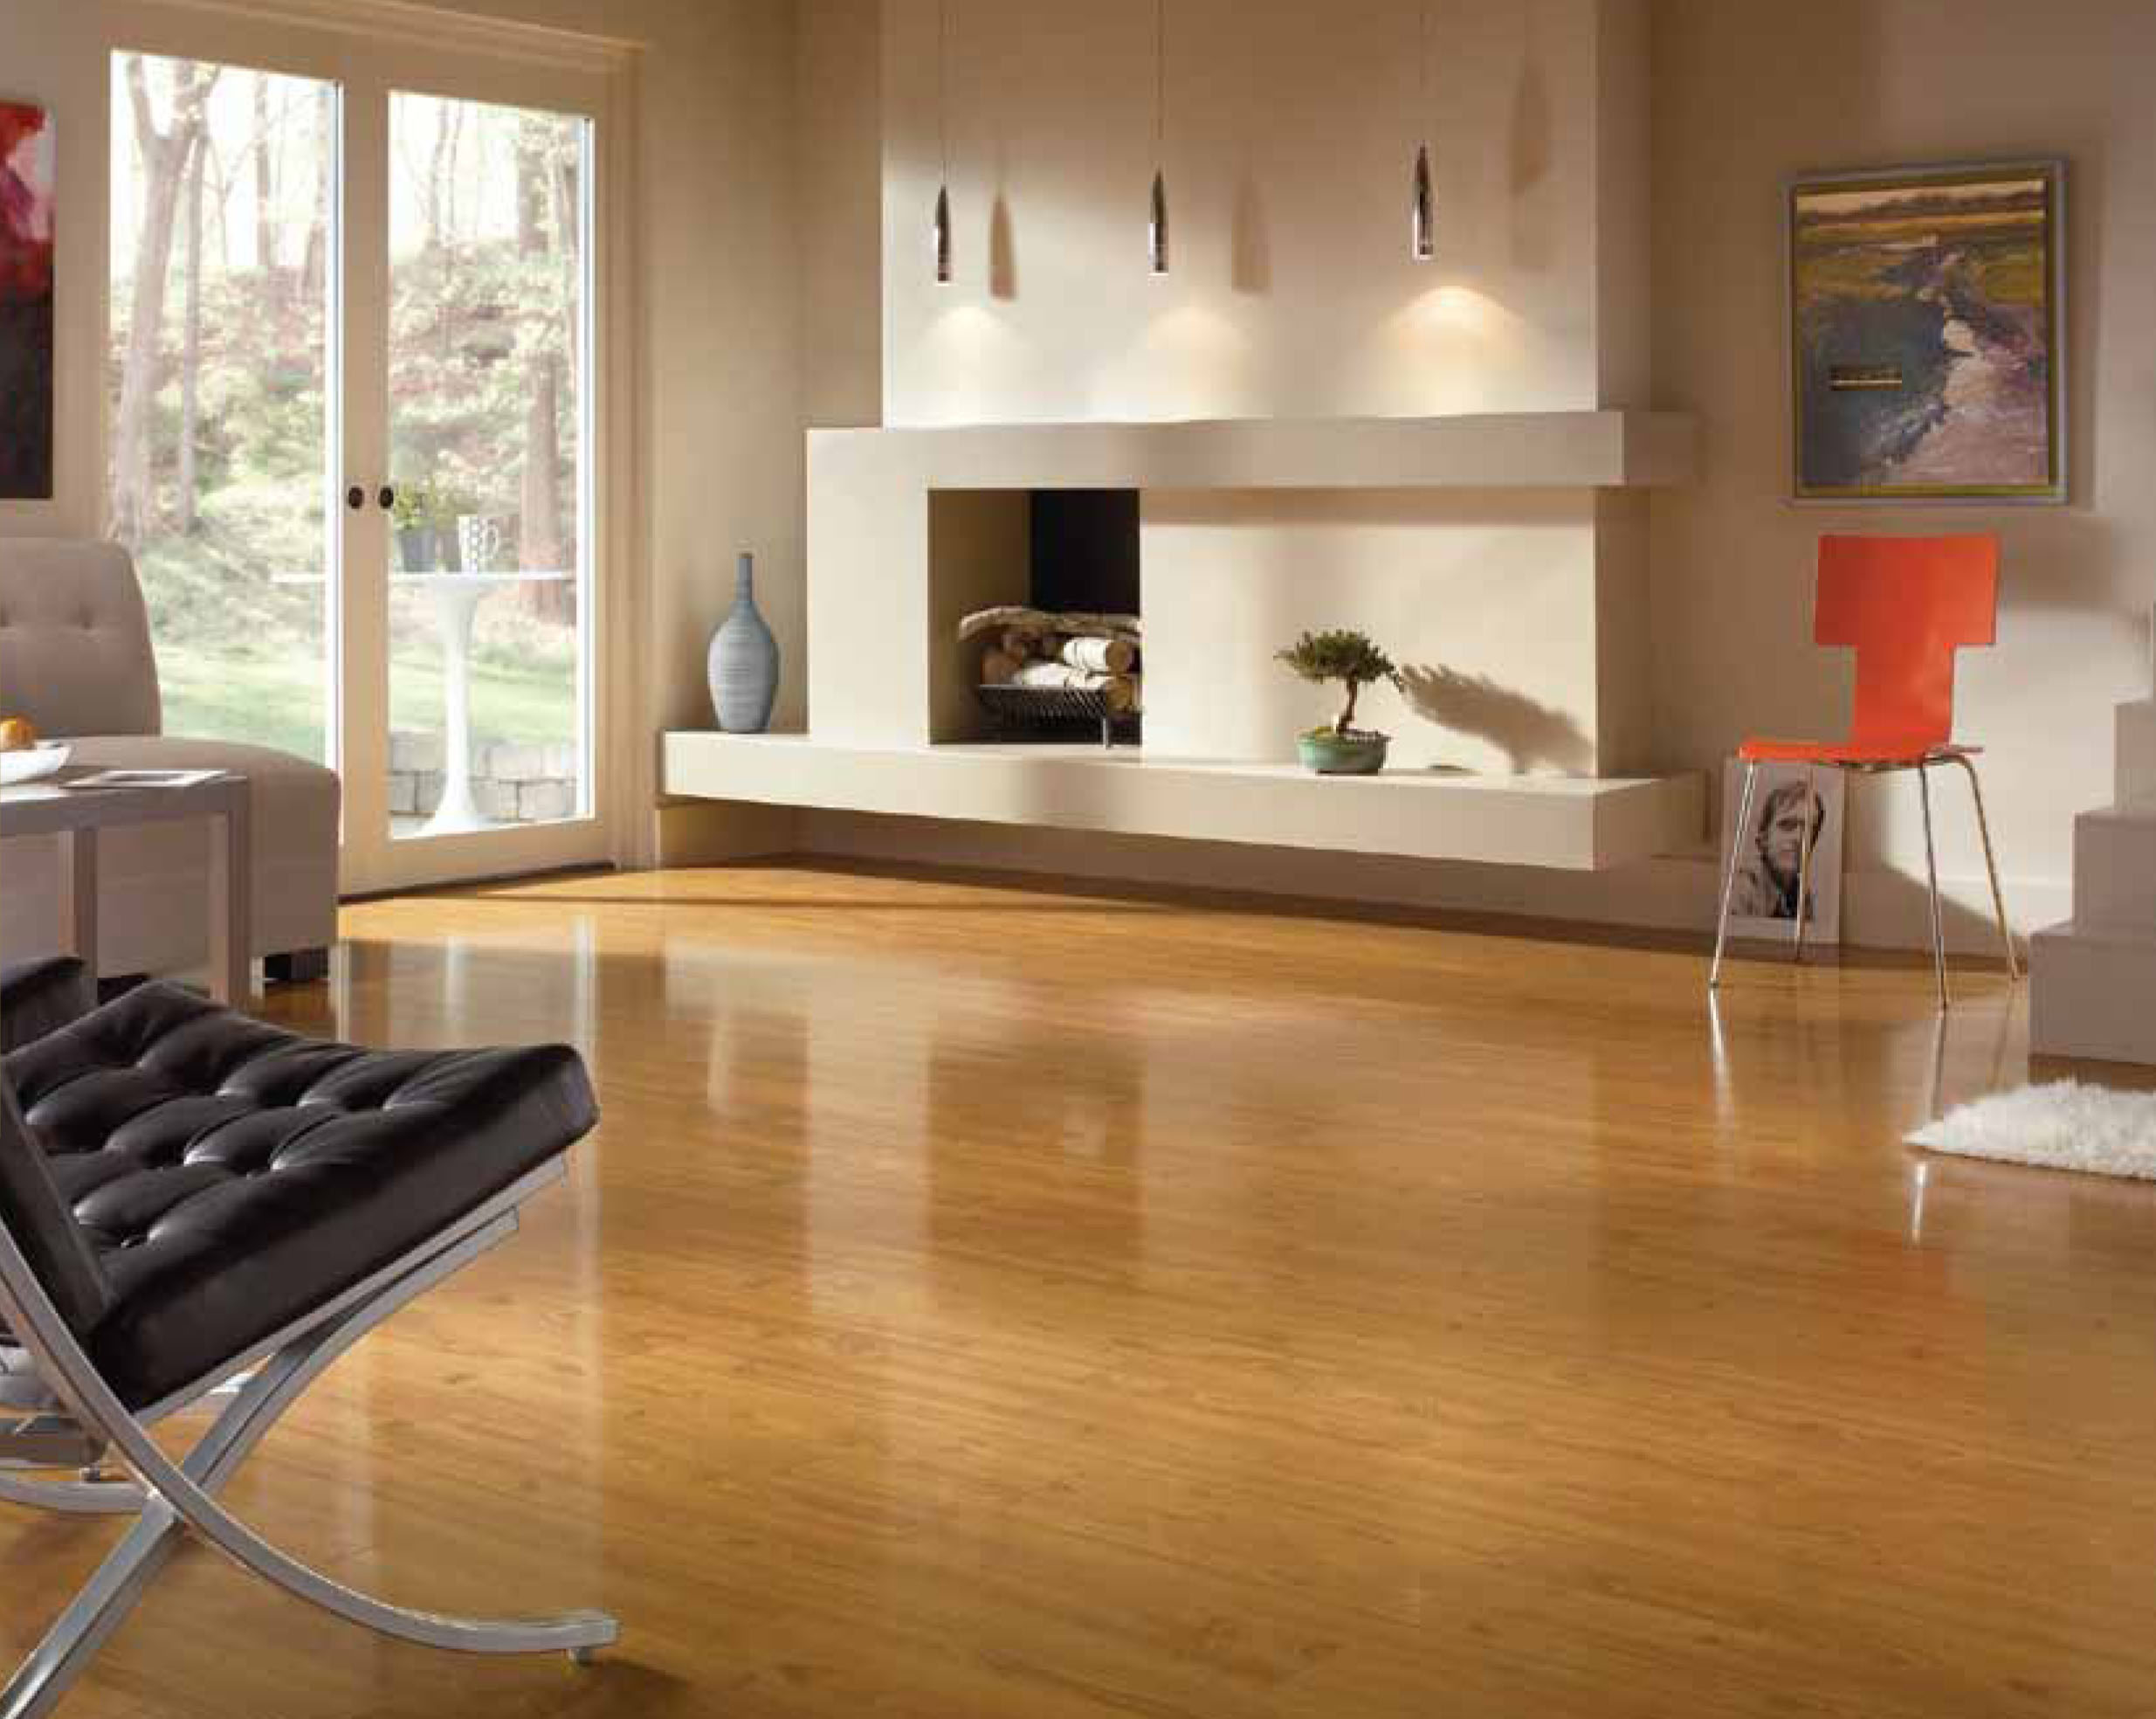 Ideal Flooring Solutions For Your Home Or Office Living Room Floor Tiles Design In India